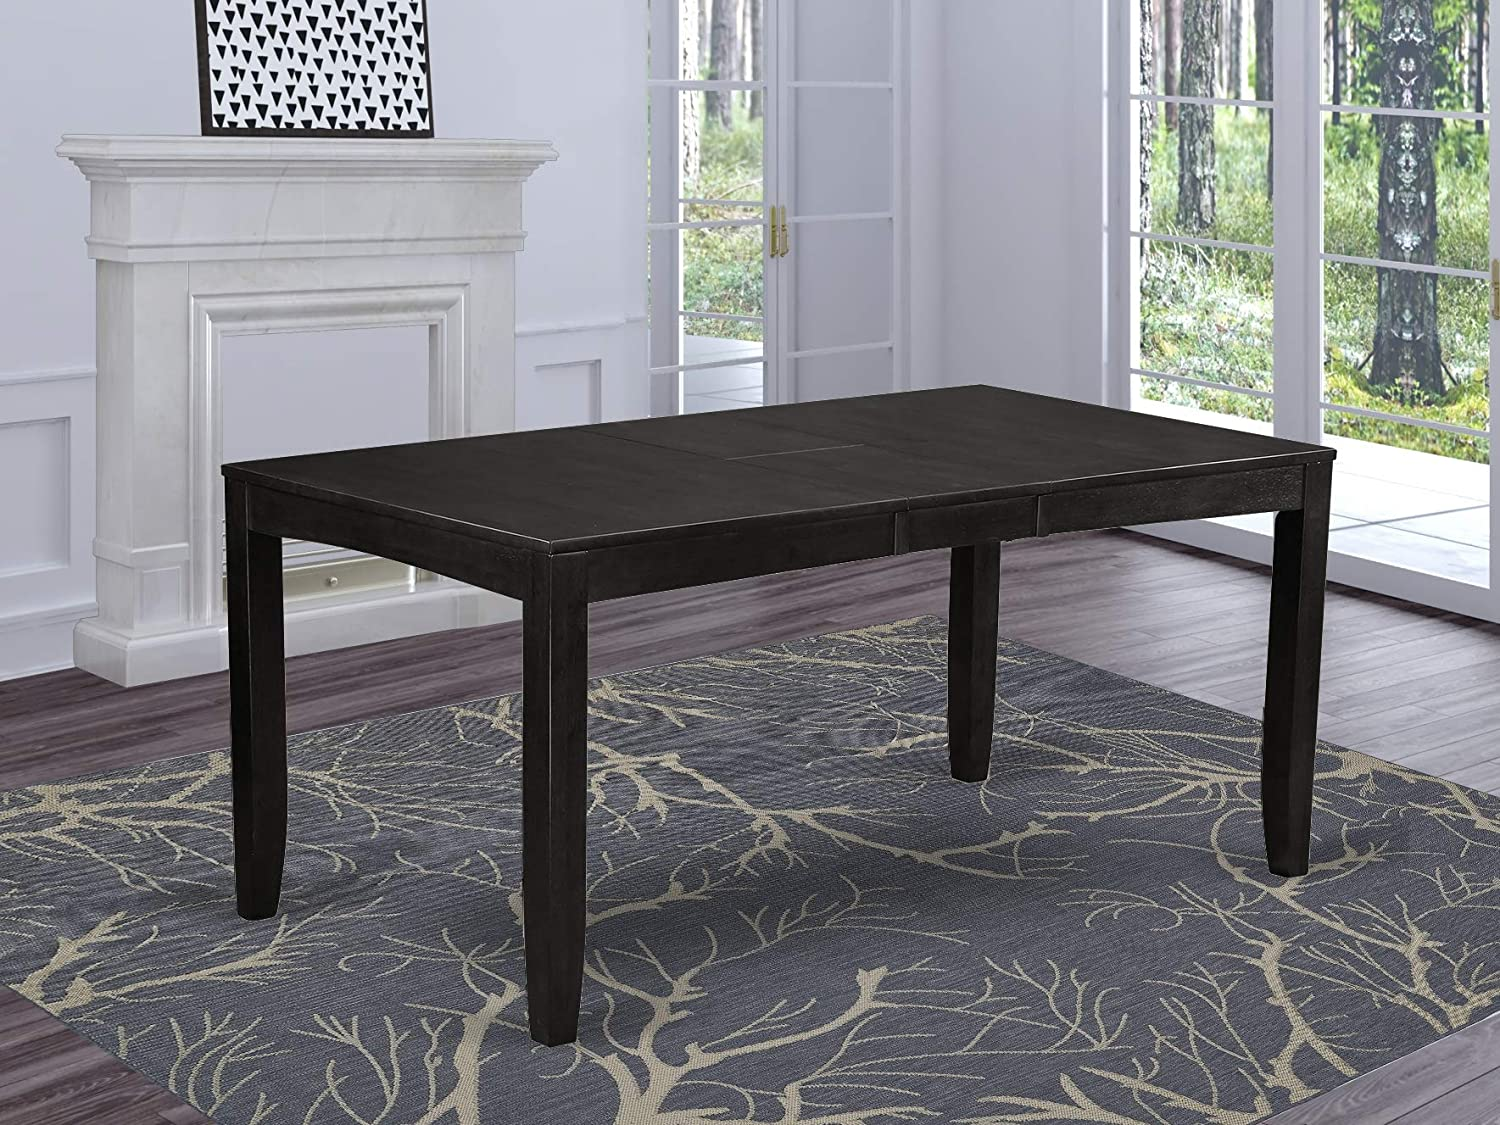 East West Furniture LYT-CAP-T Rectangular Dining Table with Butterfly Leaf, 36 by 66-Inch, Cappuccino Finish